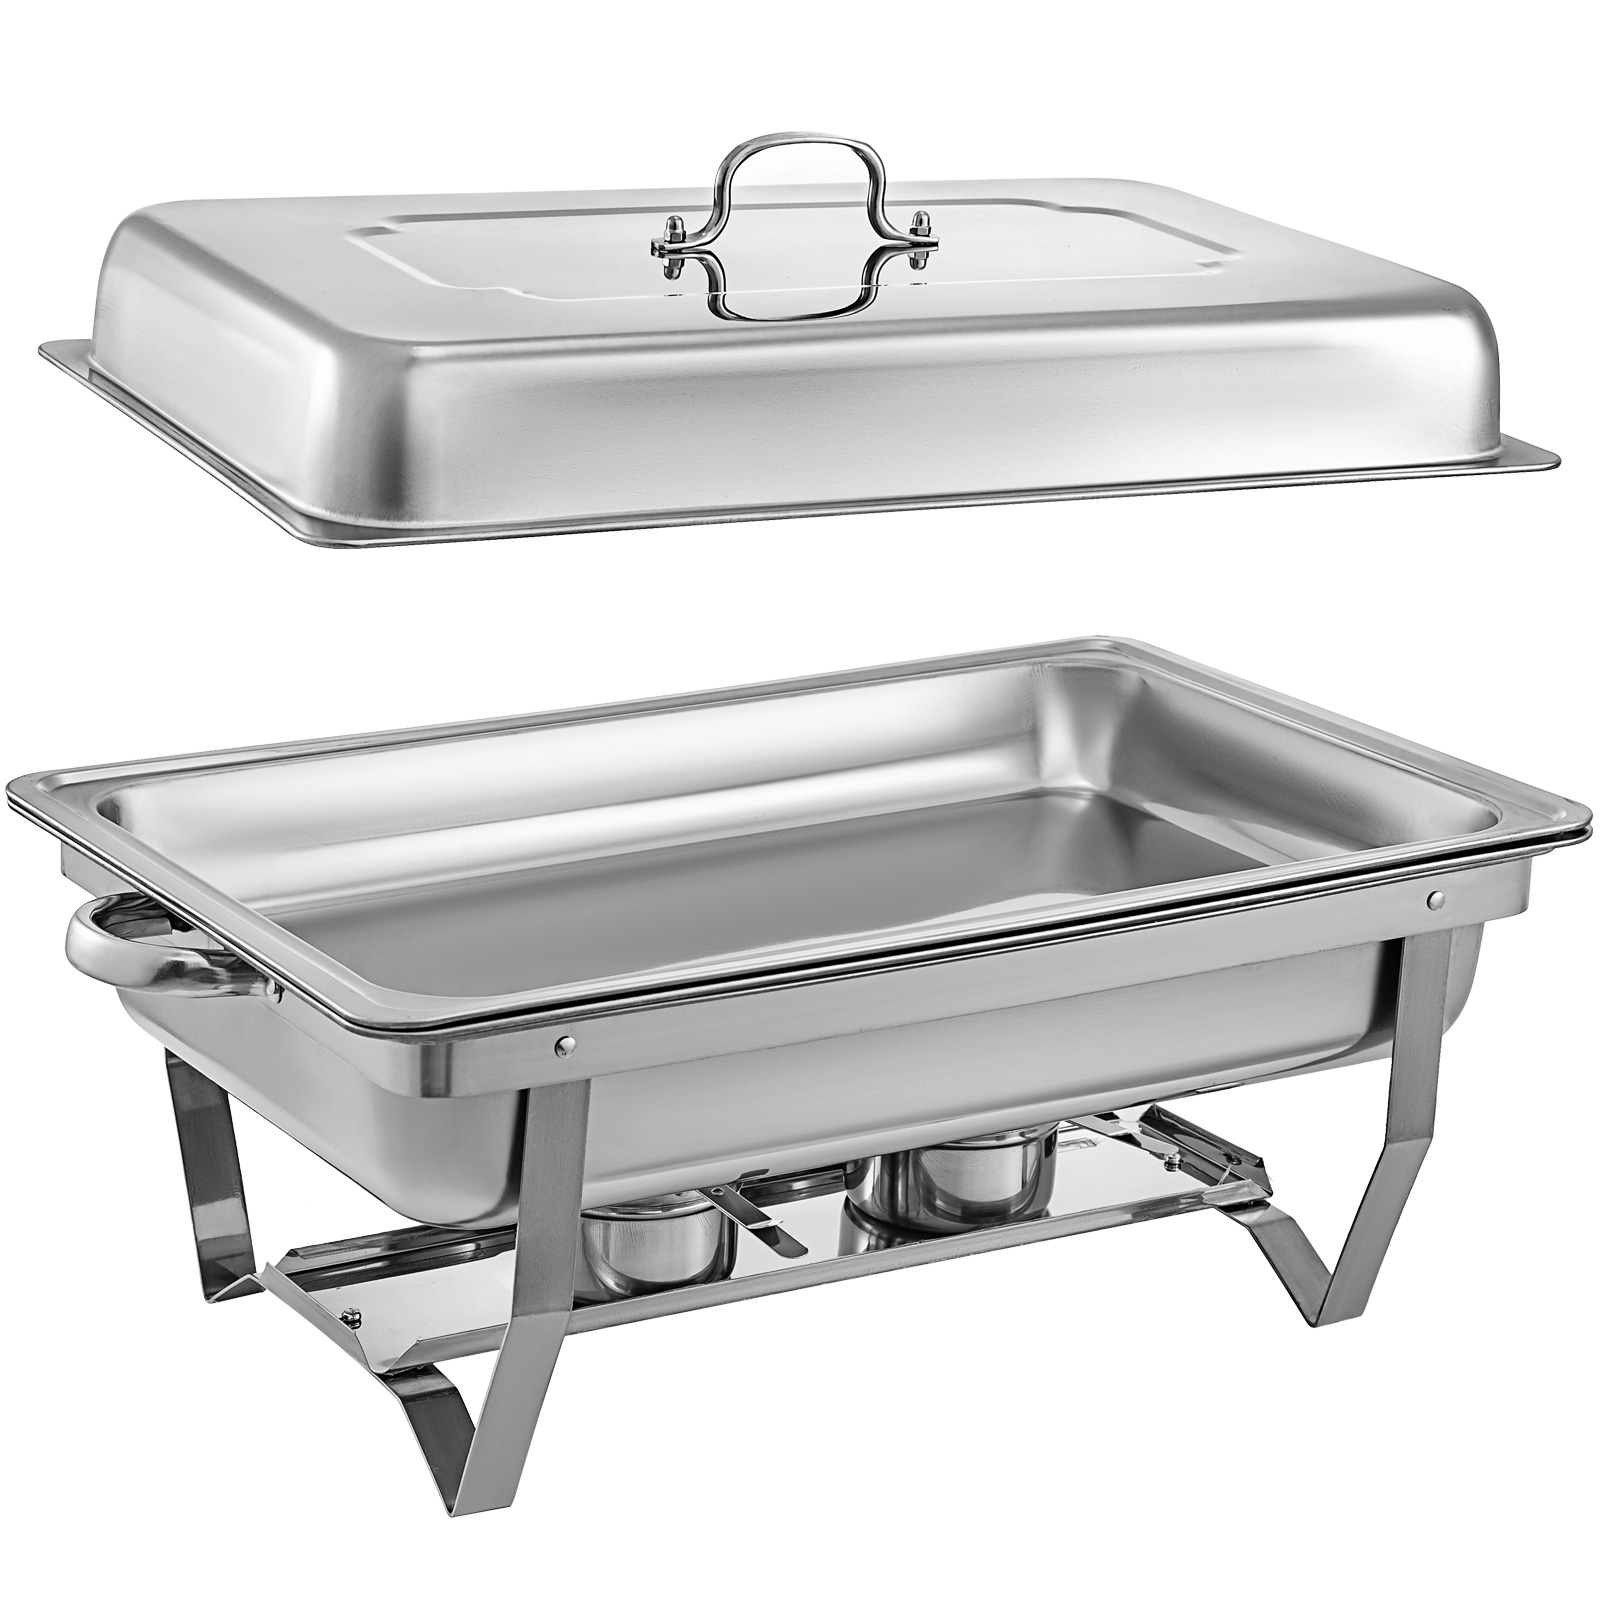 thumbnail 60 - Multi-Stainless-Steel-Chafing-Dish-Bain-Marie-Bow-Catering-Dish-Hotpot-Server